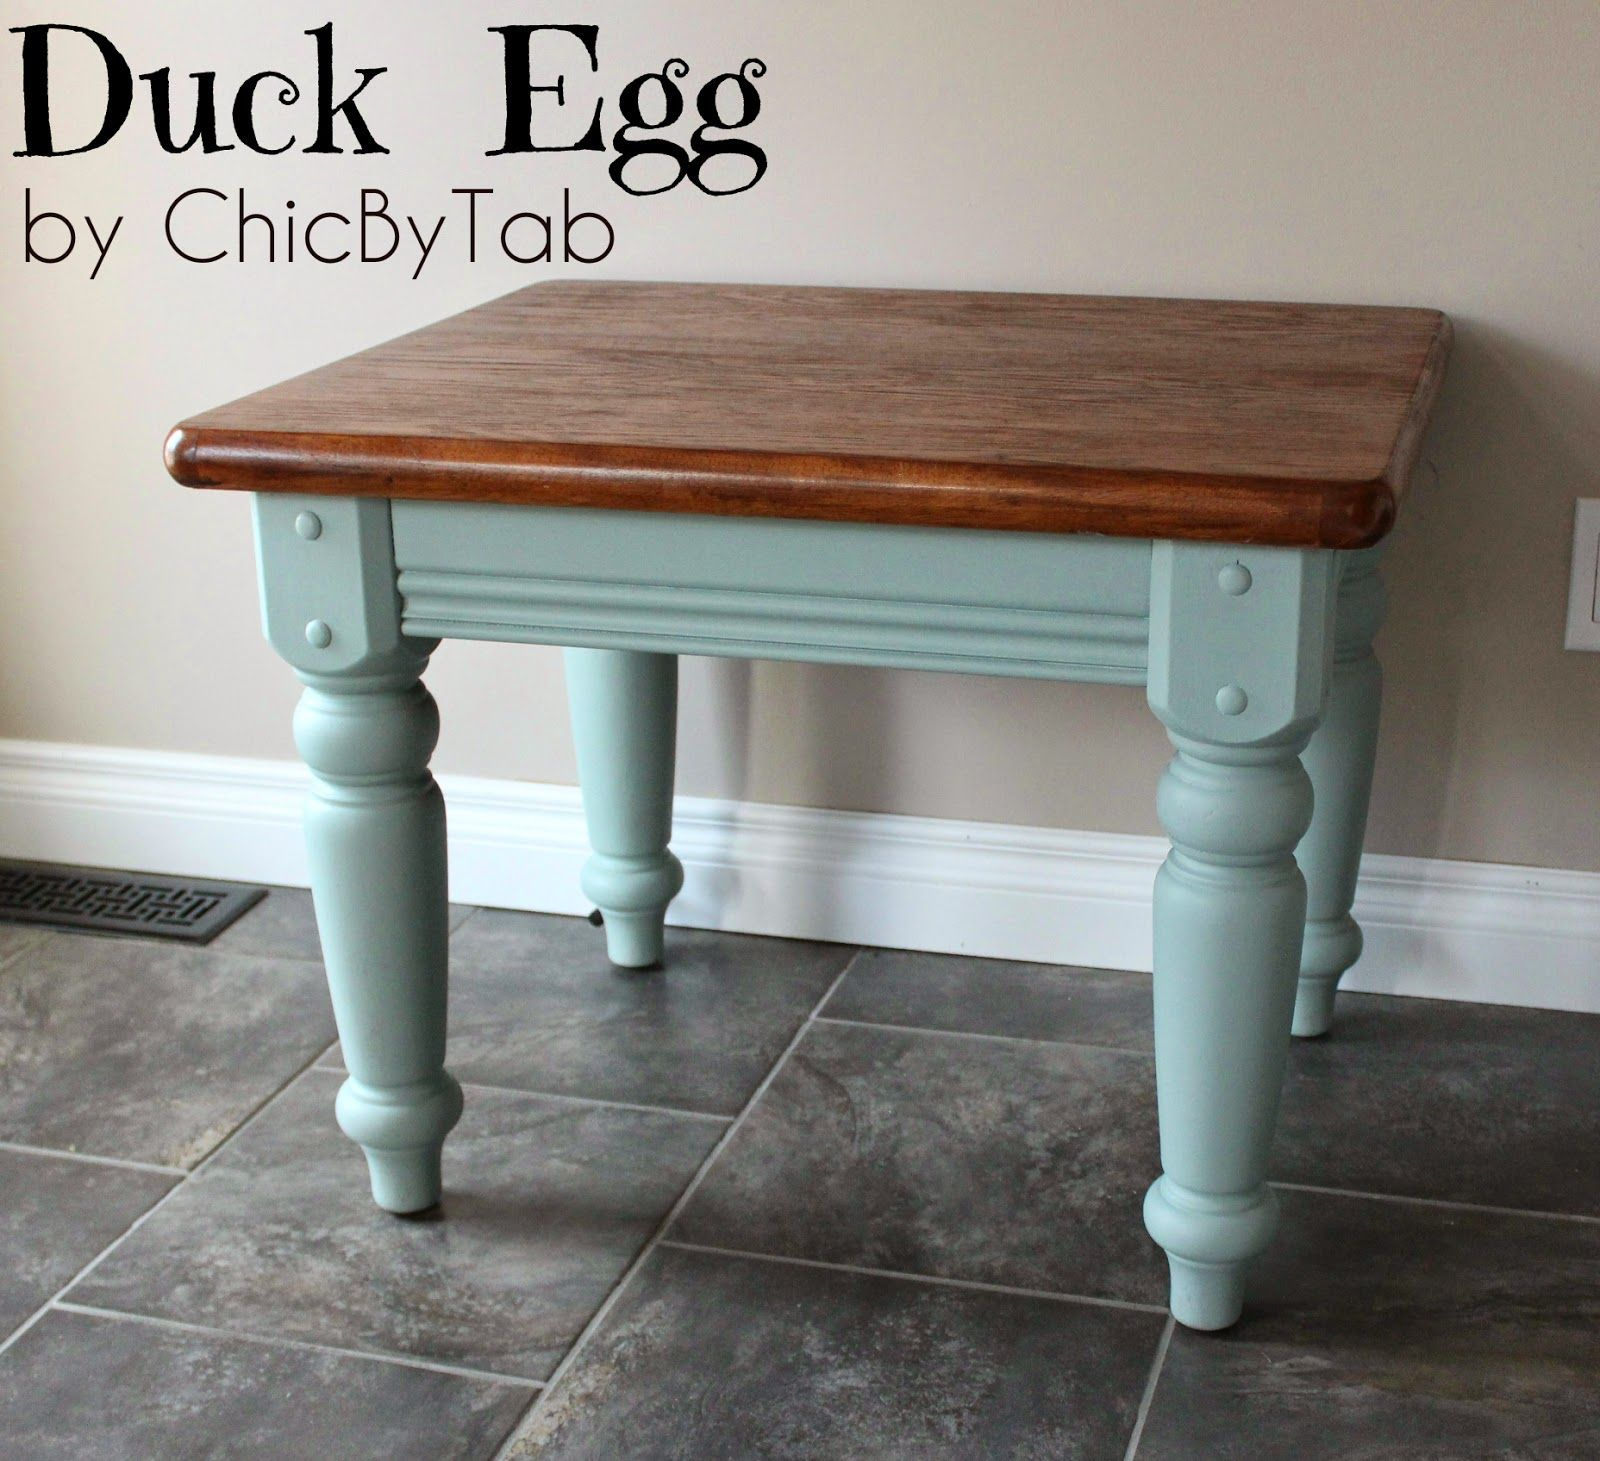 ChicByTab Coffee Table Make Over 2 shorr Pinterest